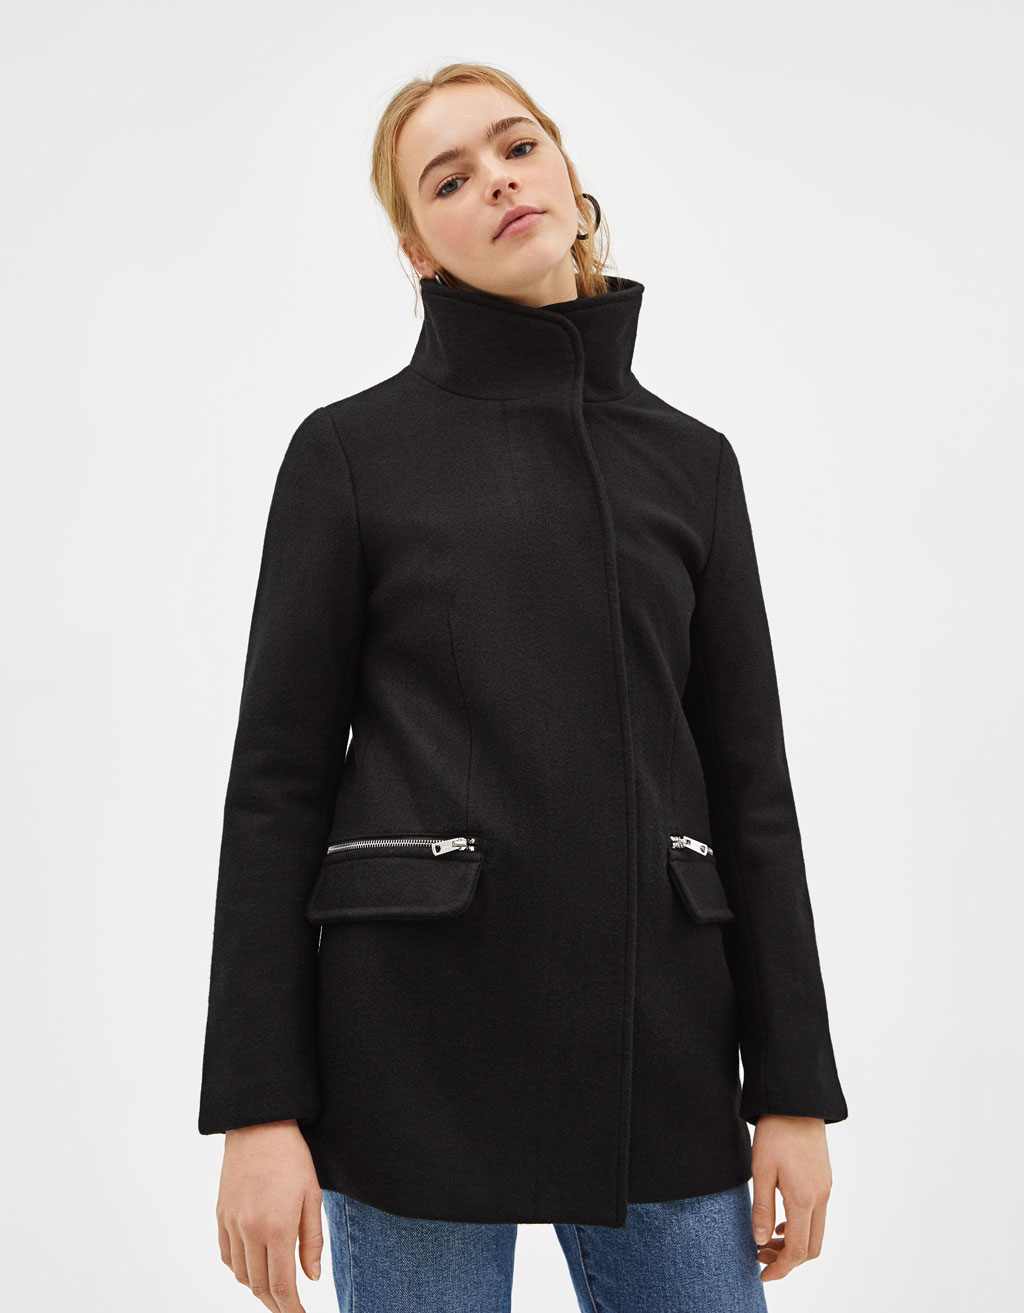 Woolly coat with zippers